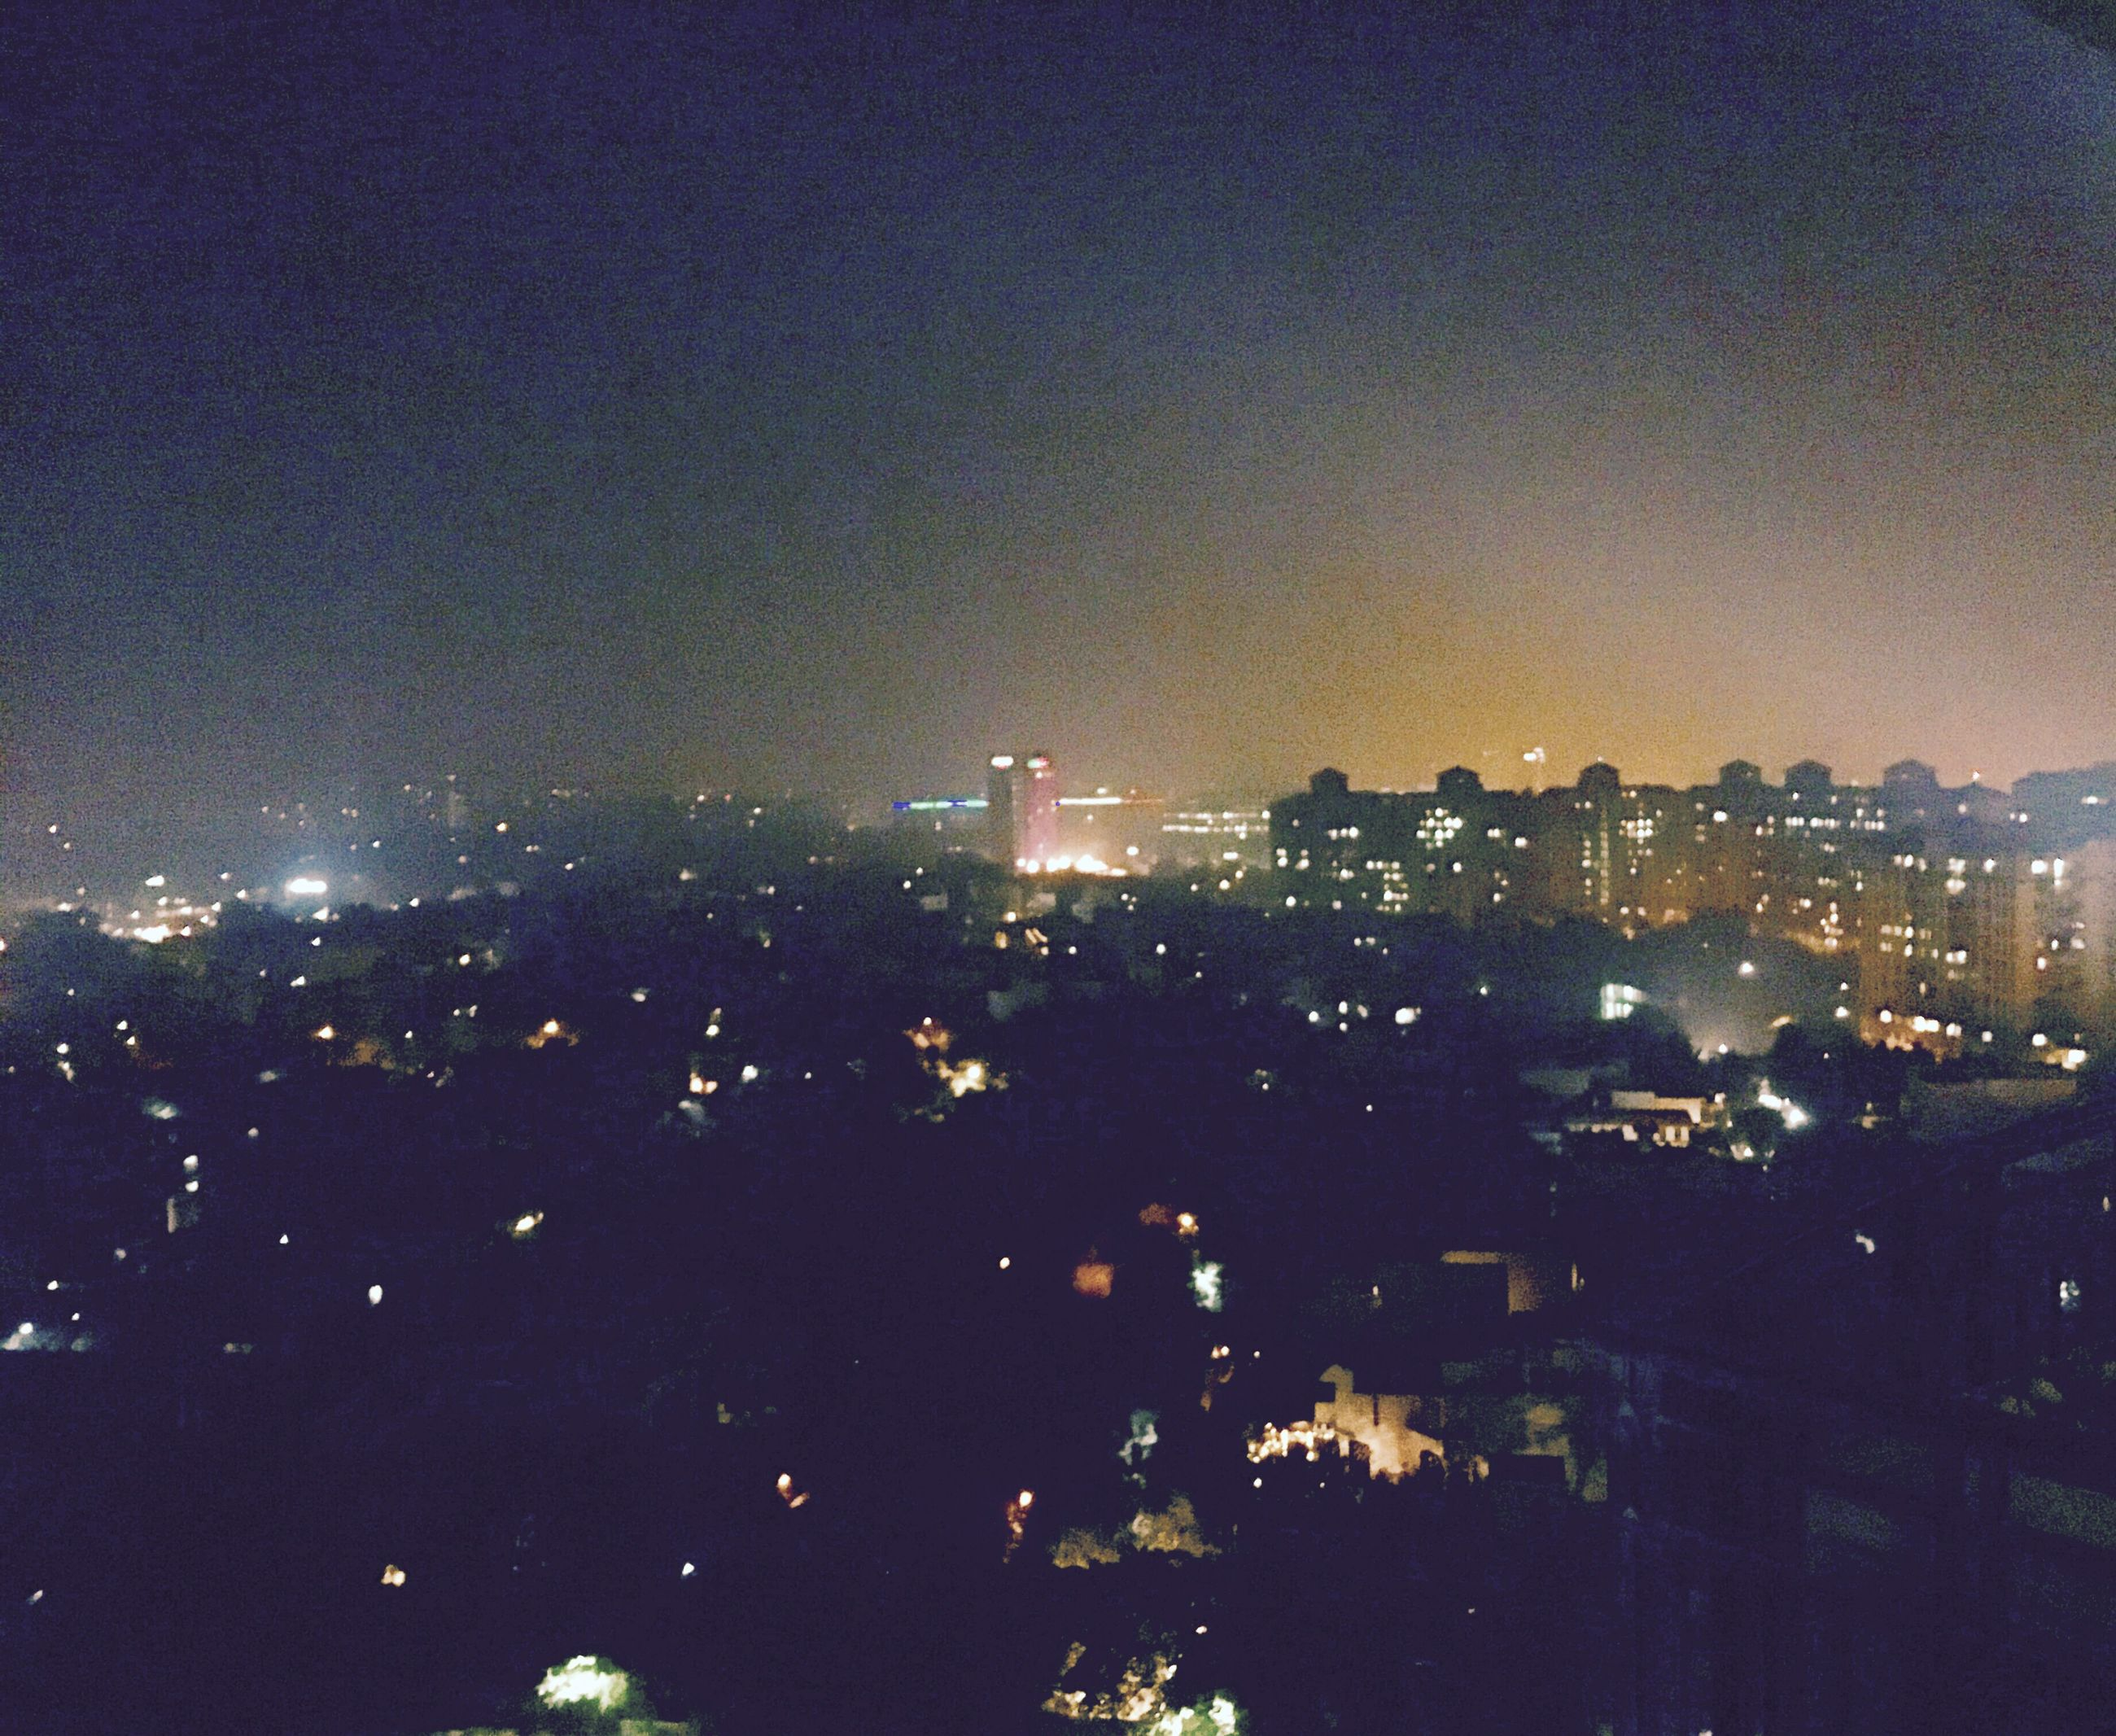 sky, night, city, illuminated, cityscape, no people, social issues, nature, building exterior, outdoors, urban skyline, beauty in nature, skyscraper, star - space, astronomy, galaxy